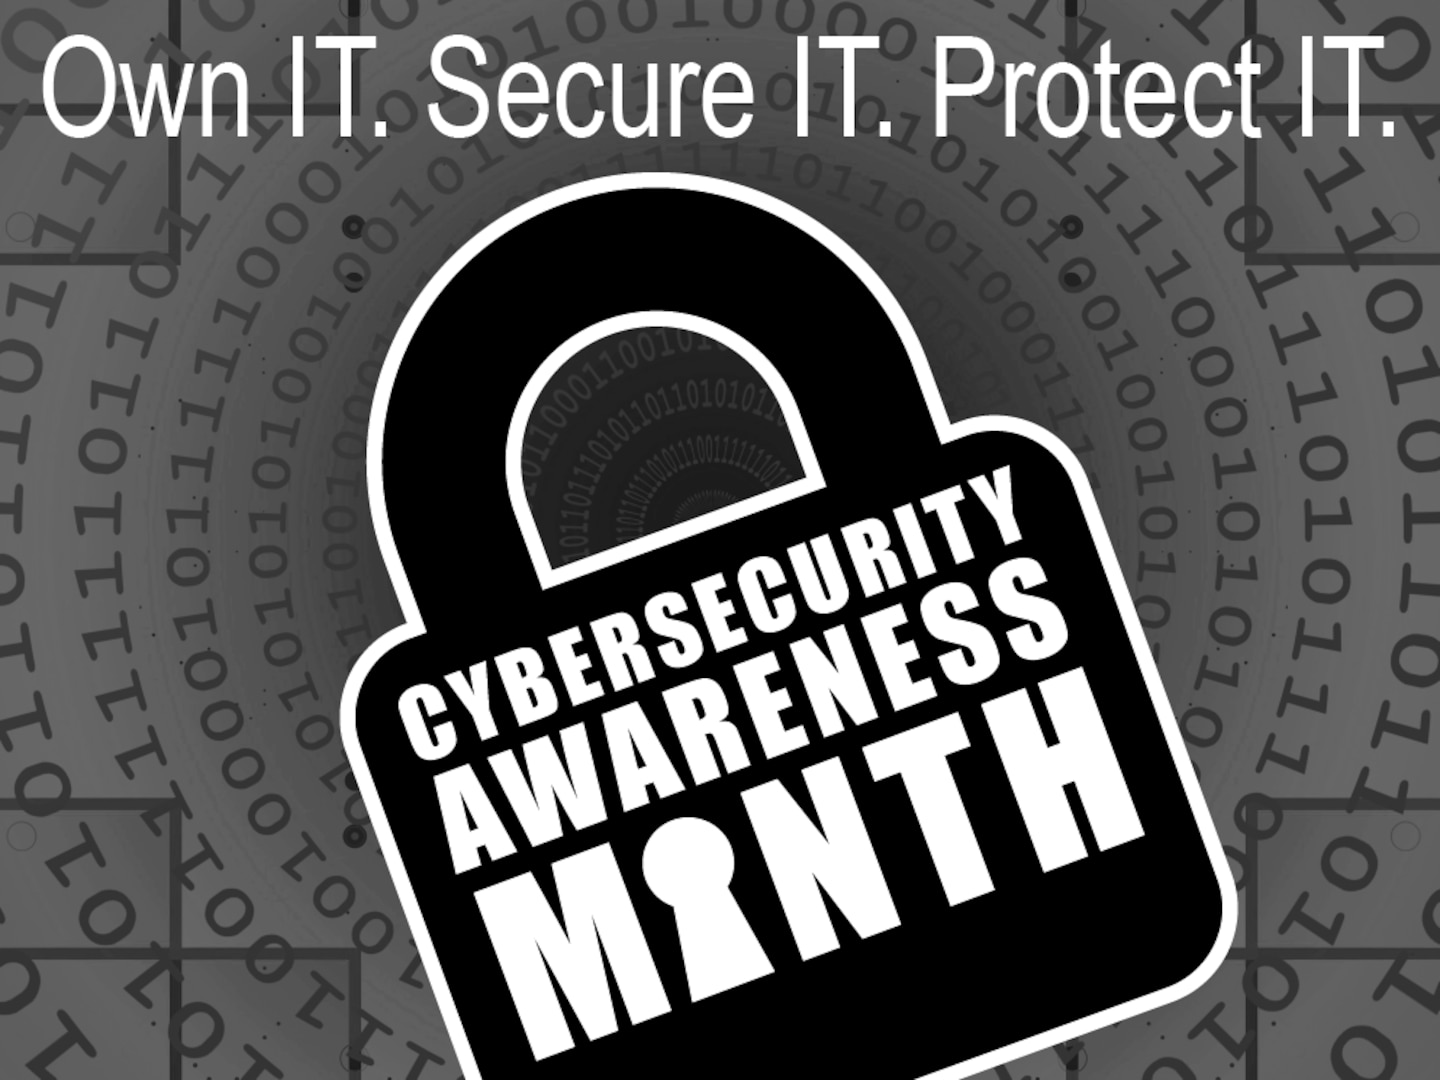 This graphic promotes the federal observance of National Cybersecurity Awareness Month at Marine Corps Installations East-Marine Corps Base Camp Lejeune (MCIEAST-MCB CAMLEJ) and Marine Corps Air Station (MCAS) New River. Created in Adobe Illustrator to enhance awareness and promote digital safety throughout the MCIEAST-MCB CAMLEJ and MCAS New River social media services. (U.S. Marine Corps digital illustration by Lance Cpl. Everett Radcliffe)